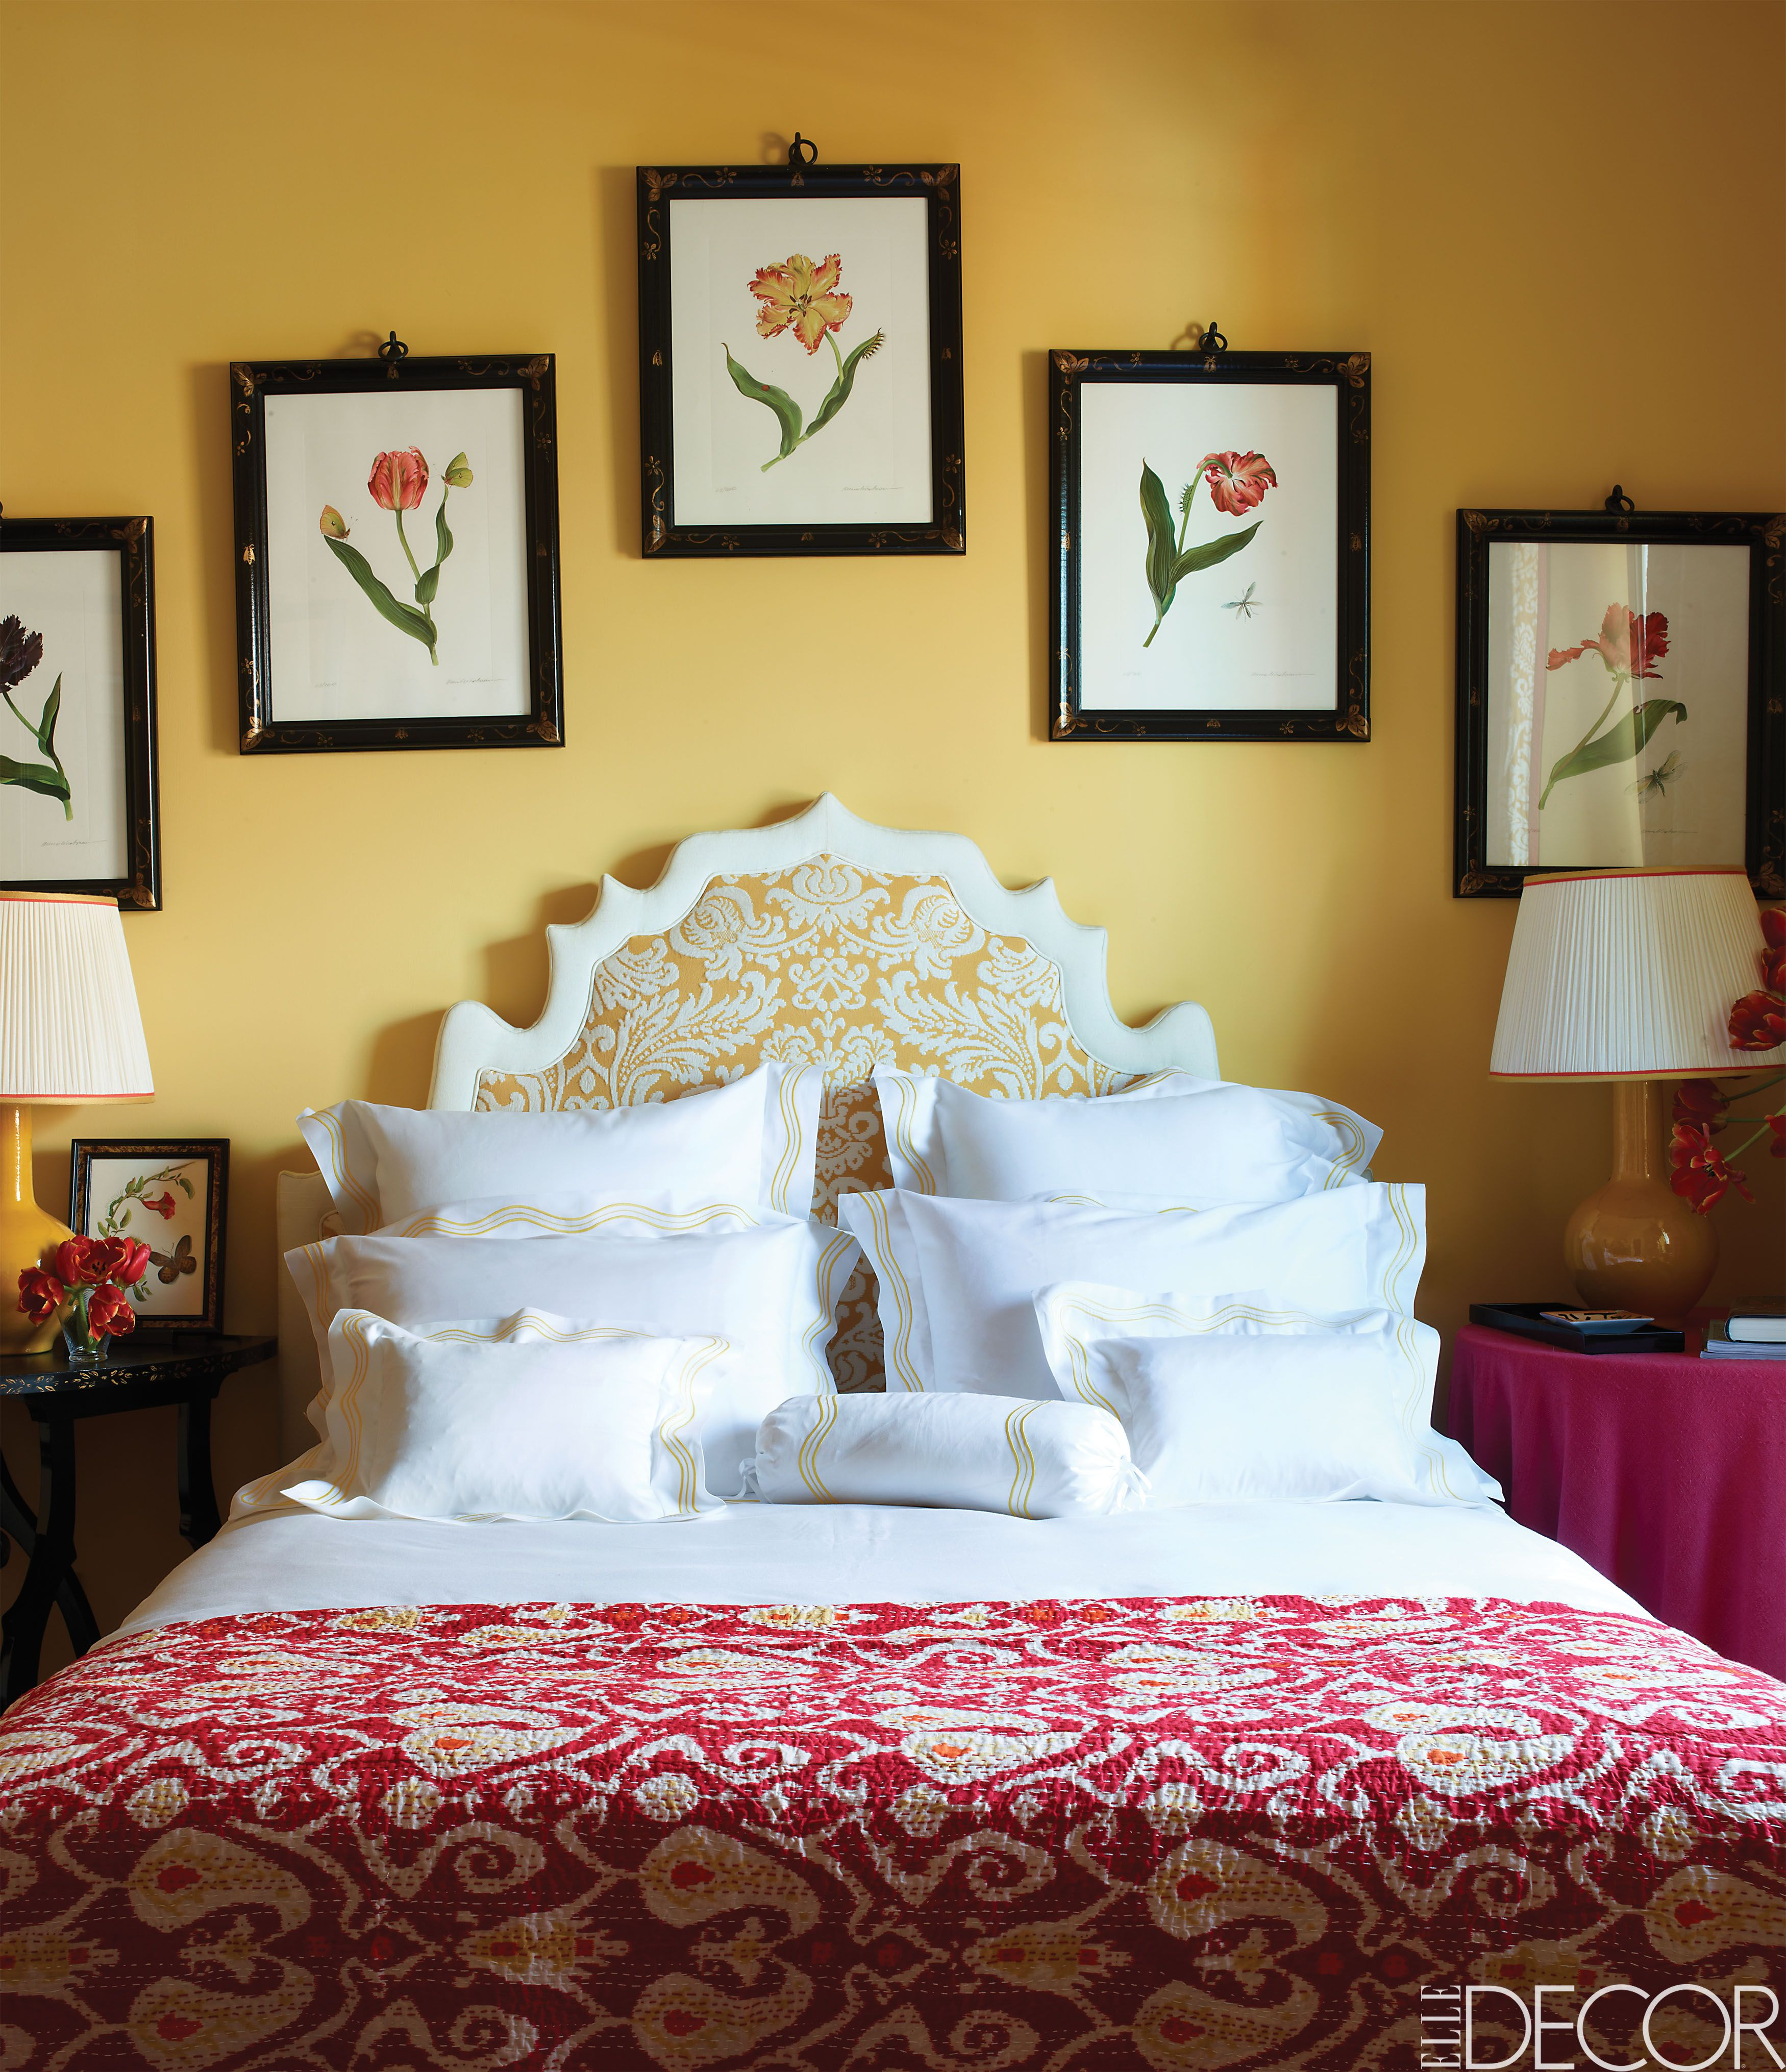 The 20 Dreamiest Guest Rooms We\'ve Ever Seen   Room, Bedrooms and ...